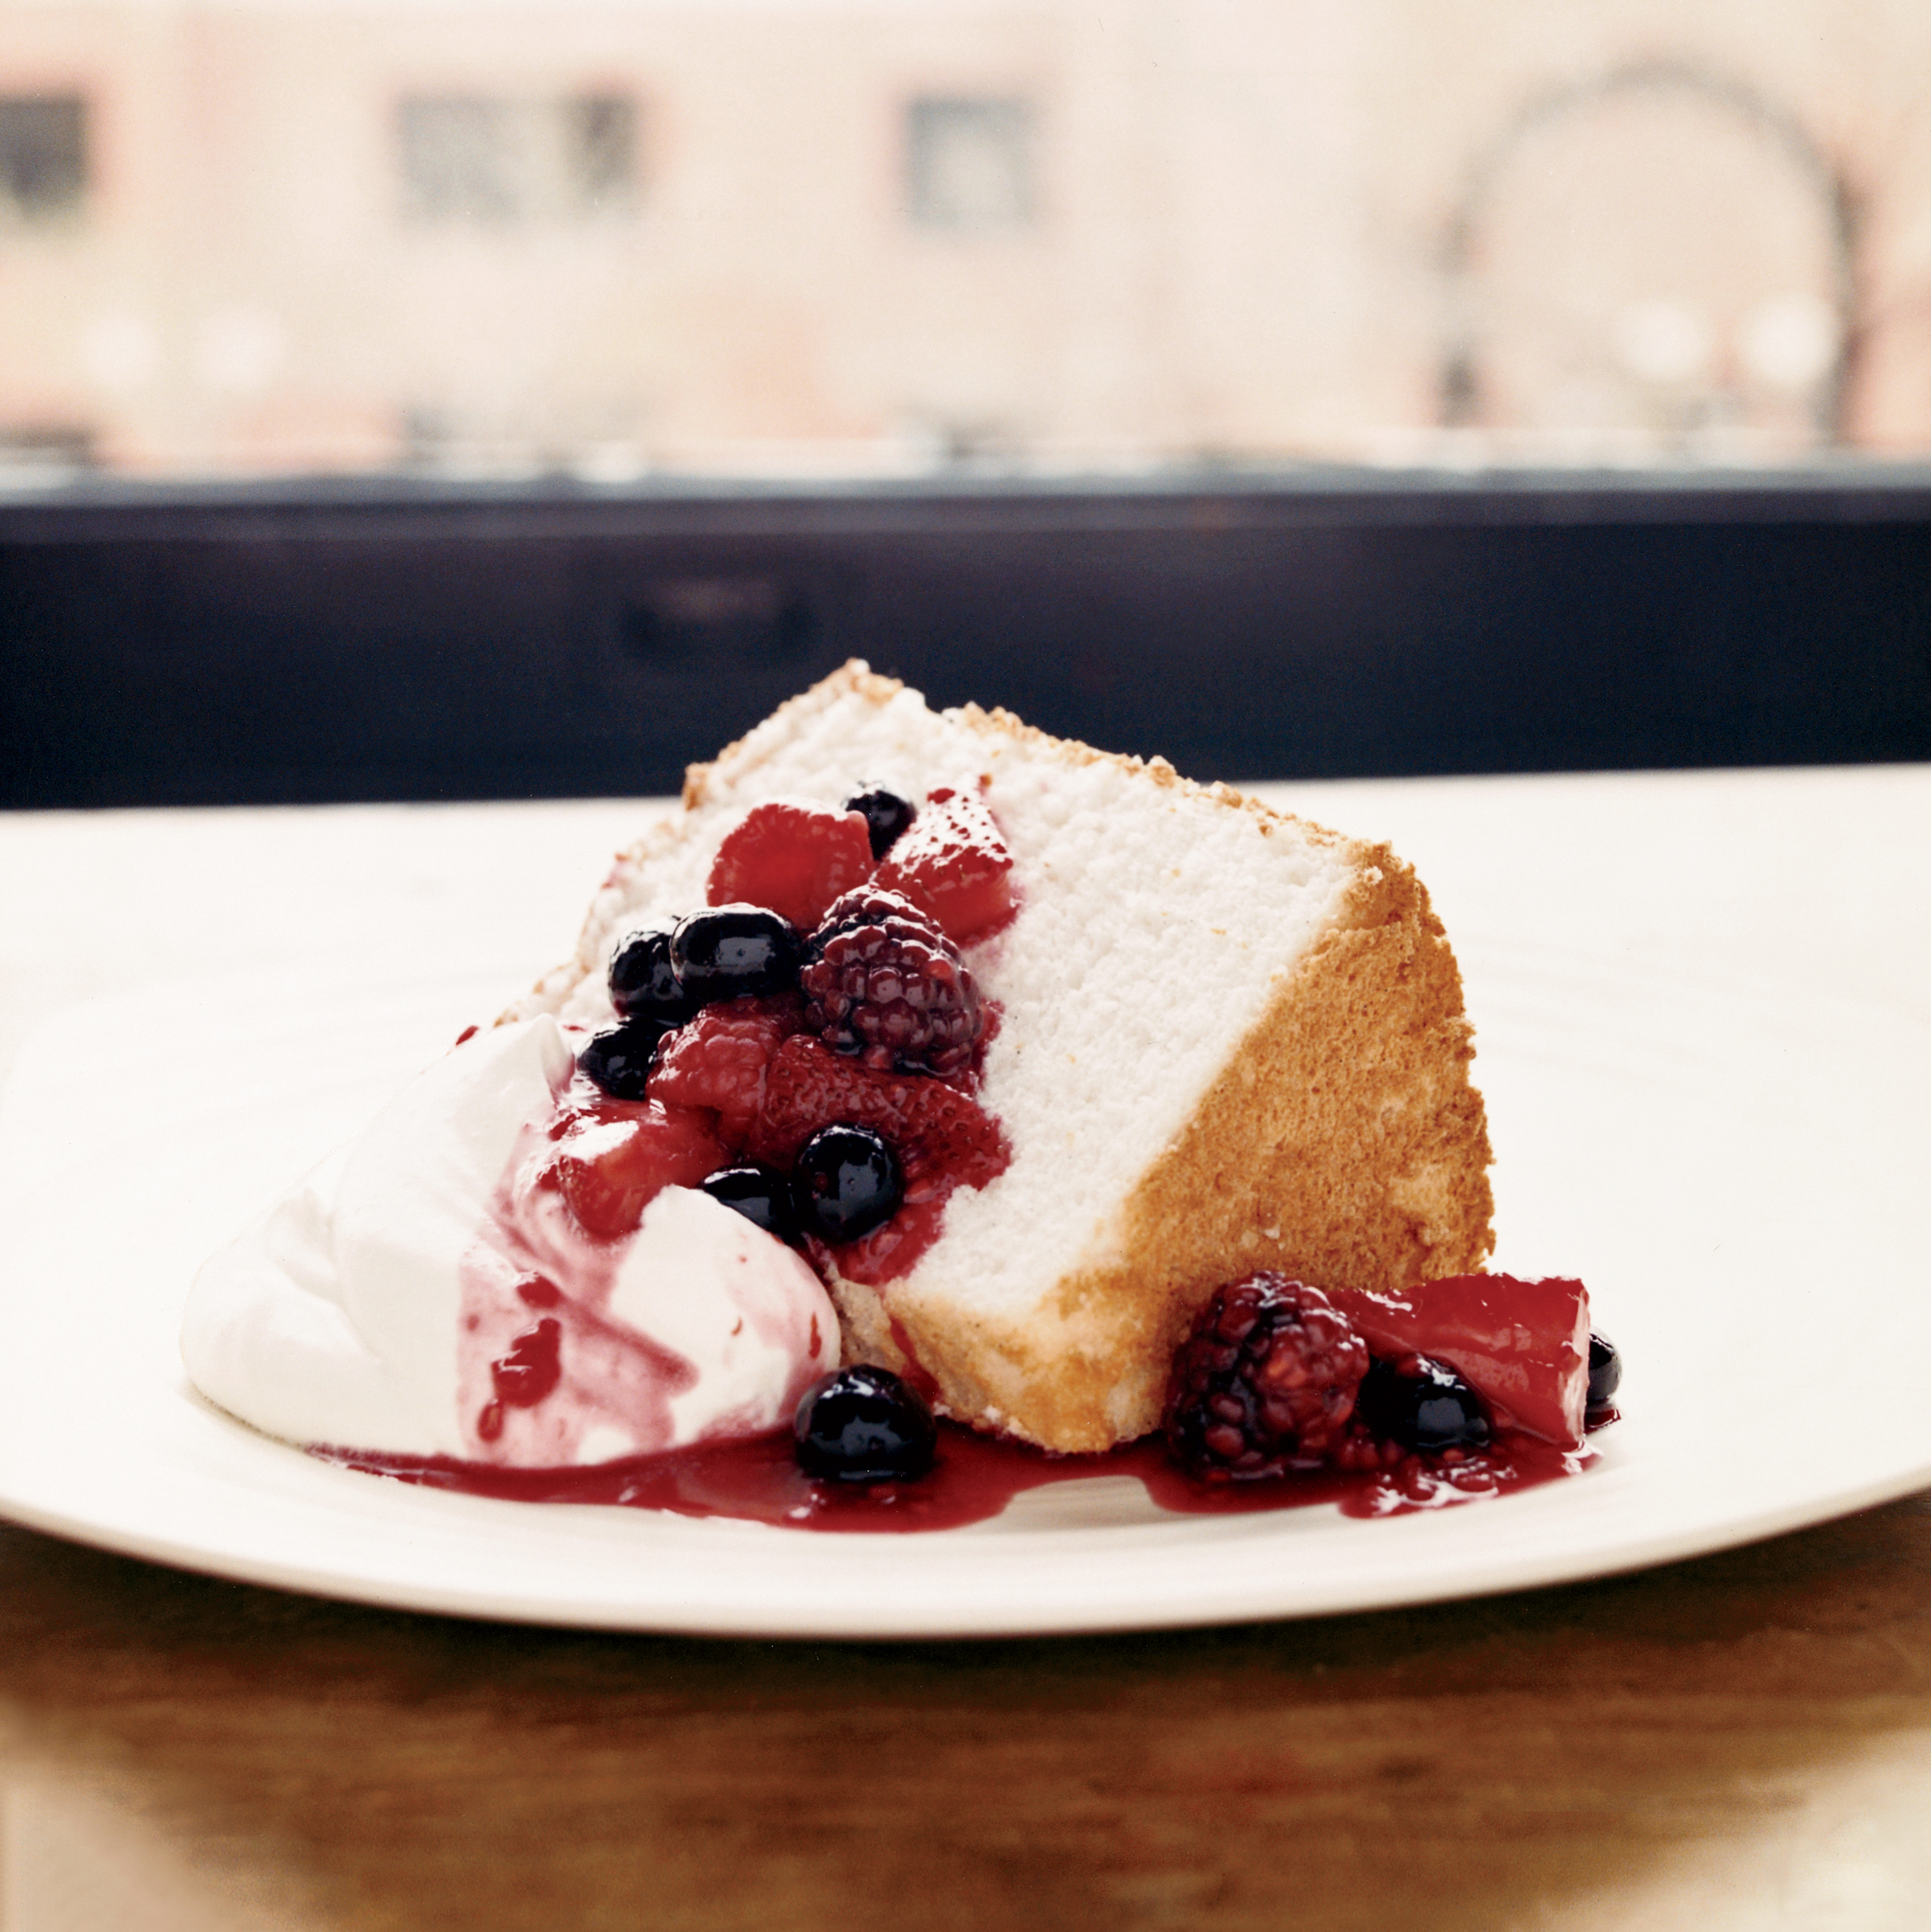 Angel Food Cake With Fruit Compote And Whipped Cream